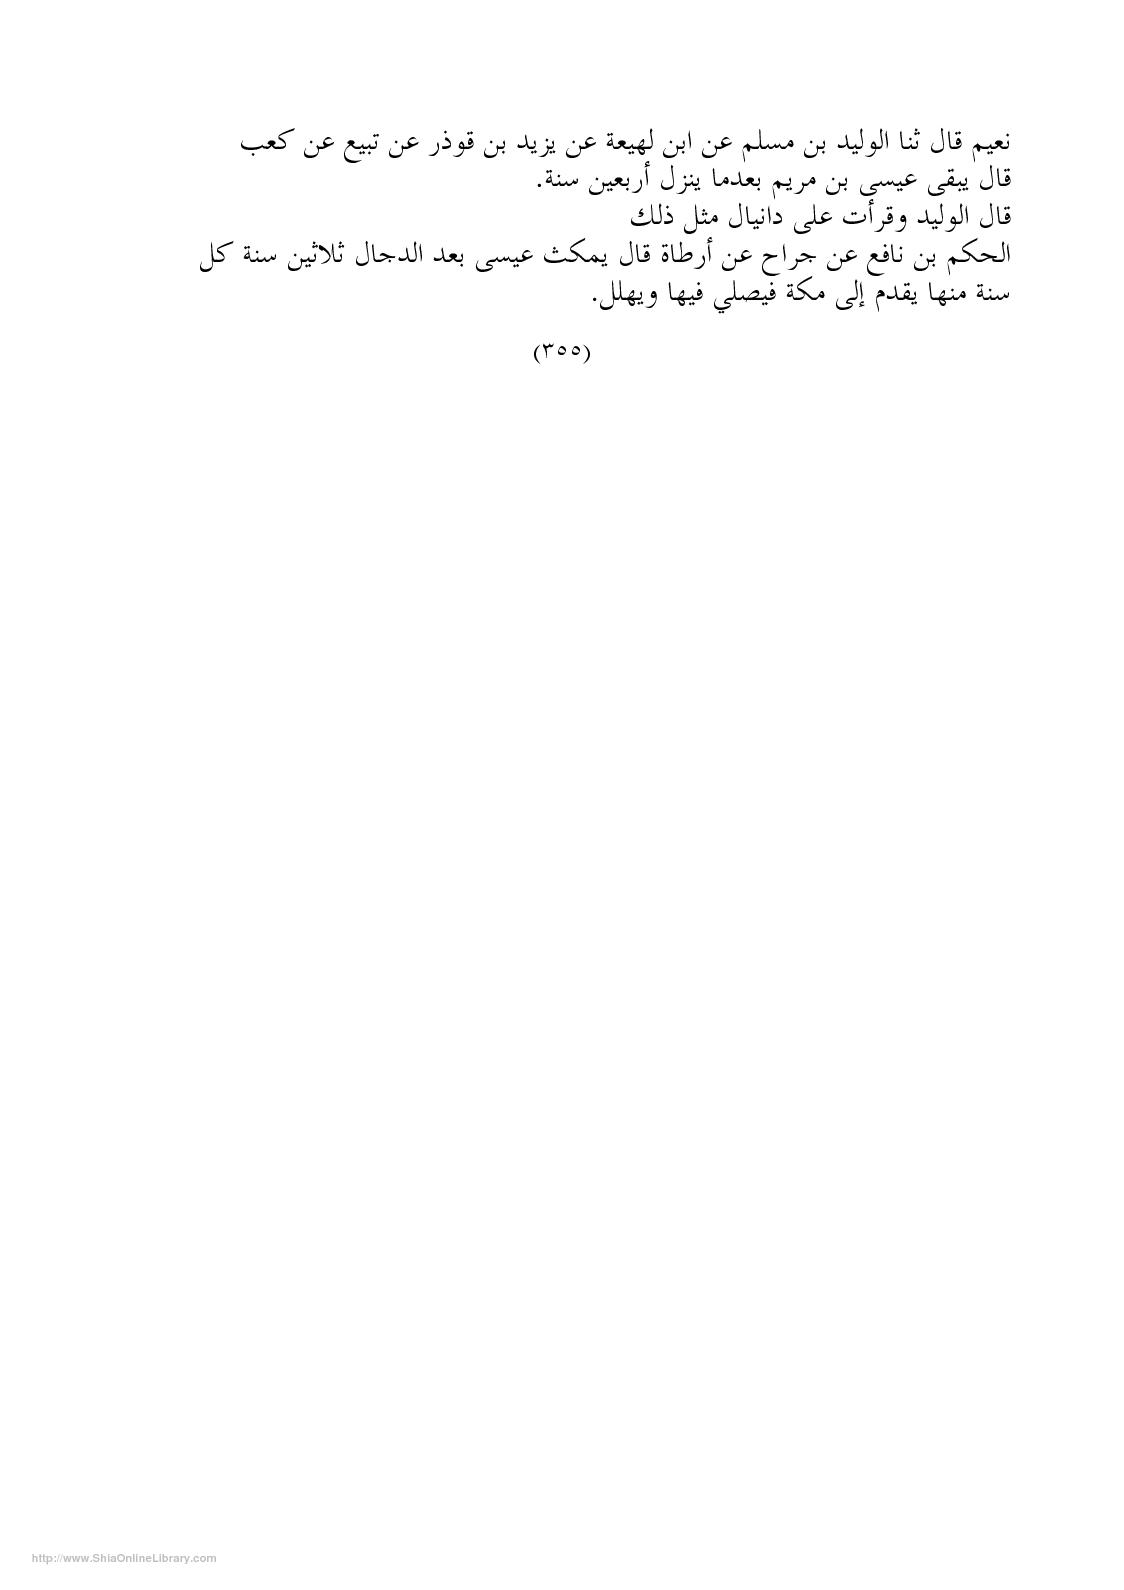 Page 350